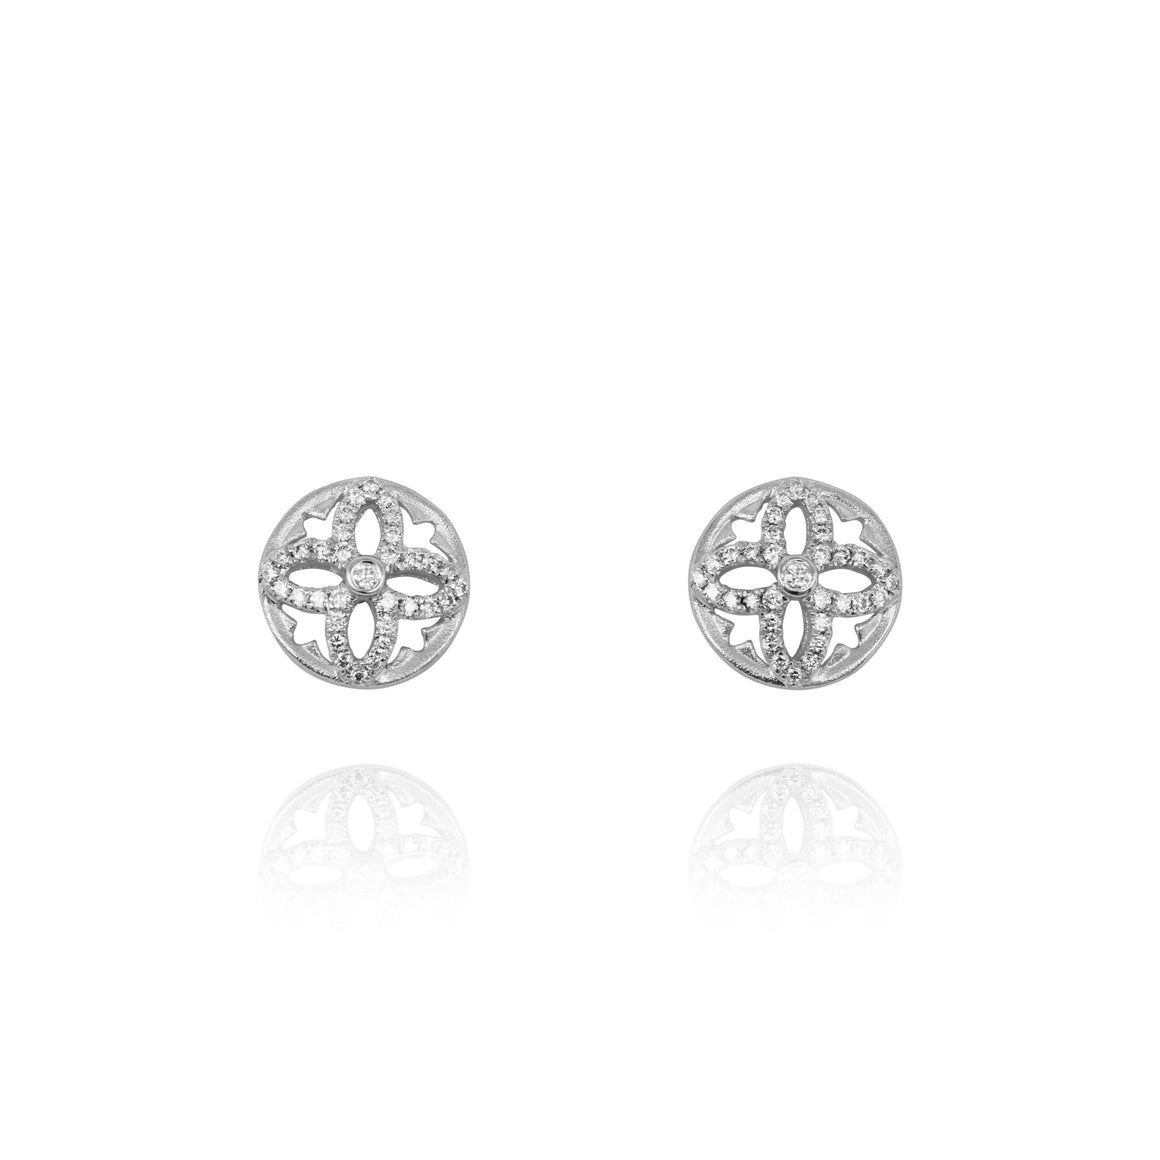 Yael 14k White Gold Diamond Flower Stud Earrings